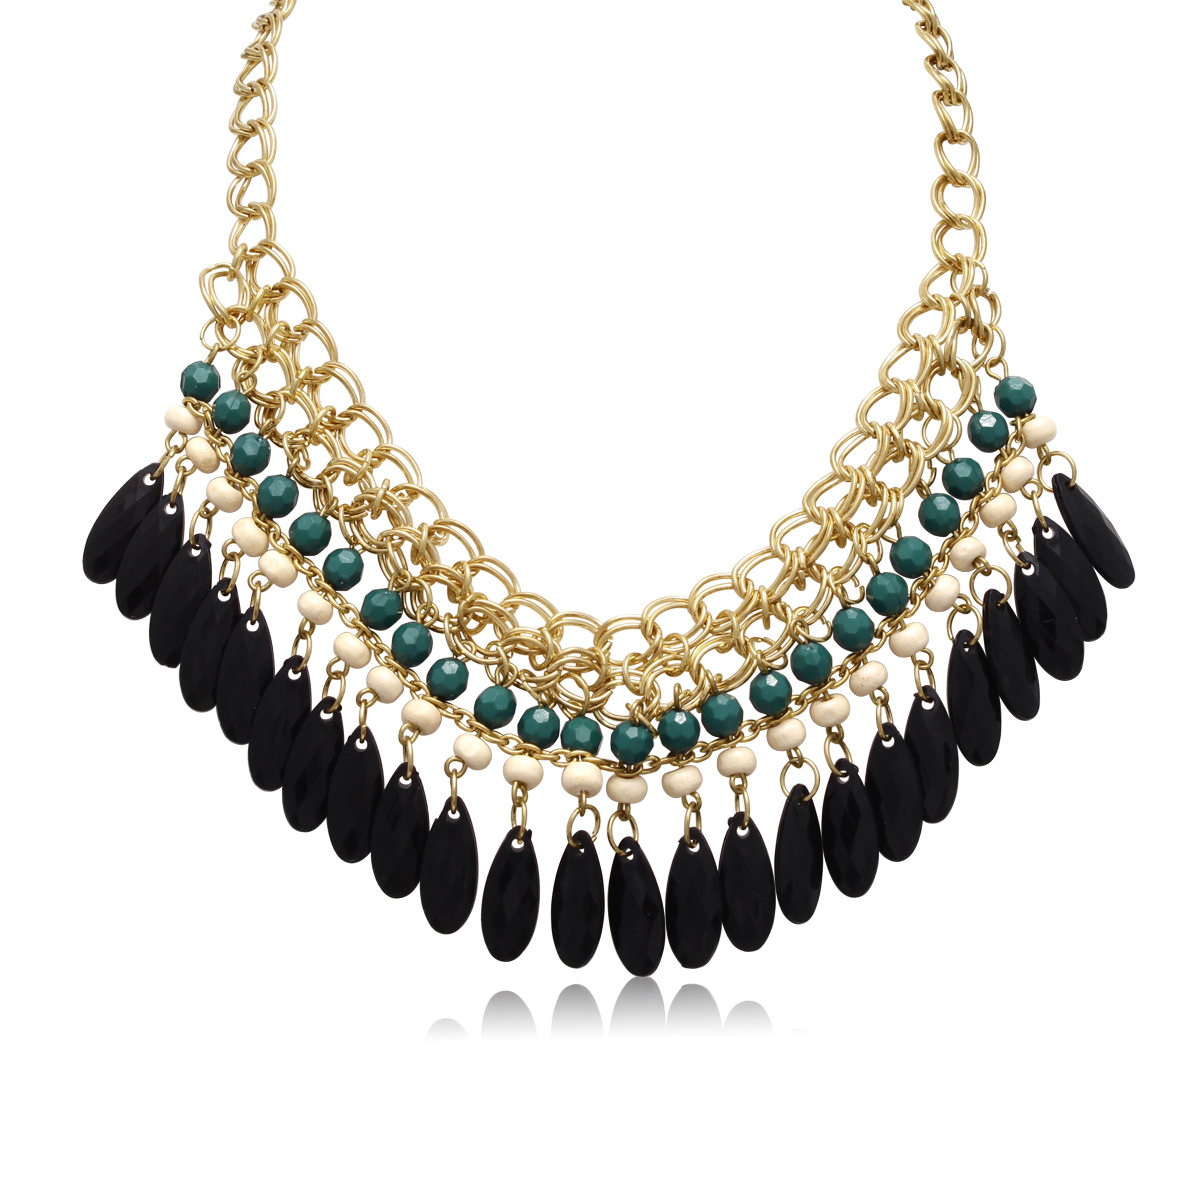 Emerald and Black Onyx Crystal Bib Necklace In Gold Overlay, 16 Inches